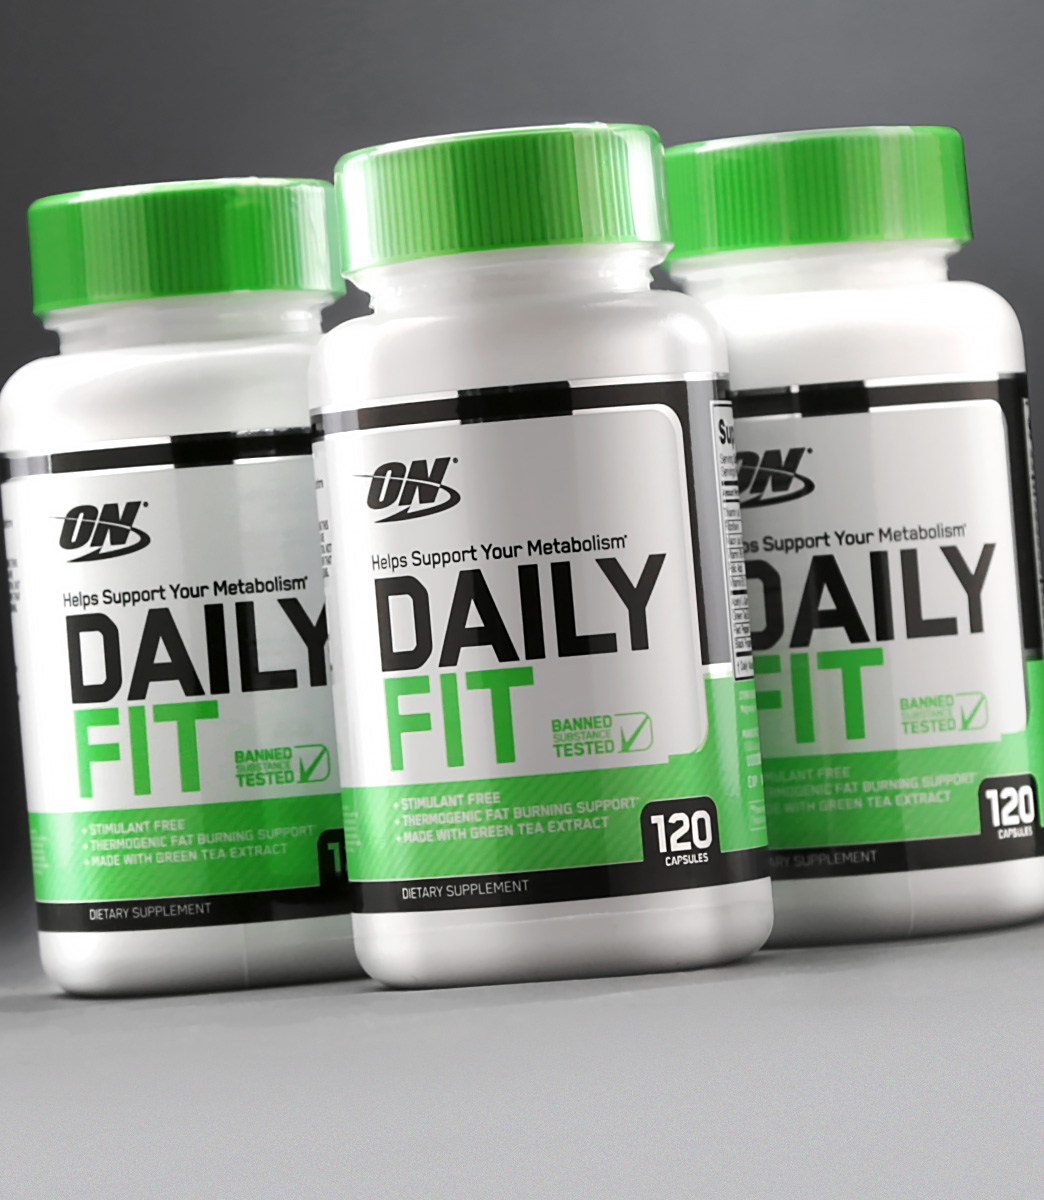 DAILY FIT METABOLISM SUPPORT